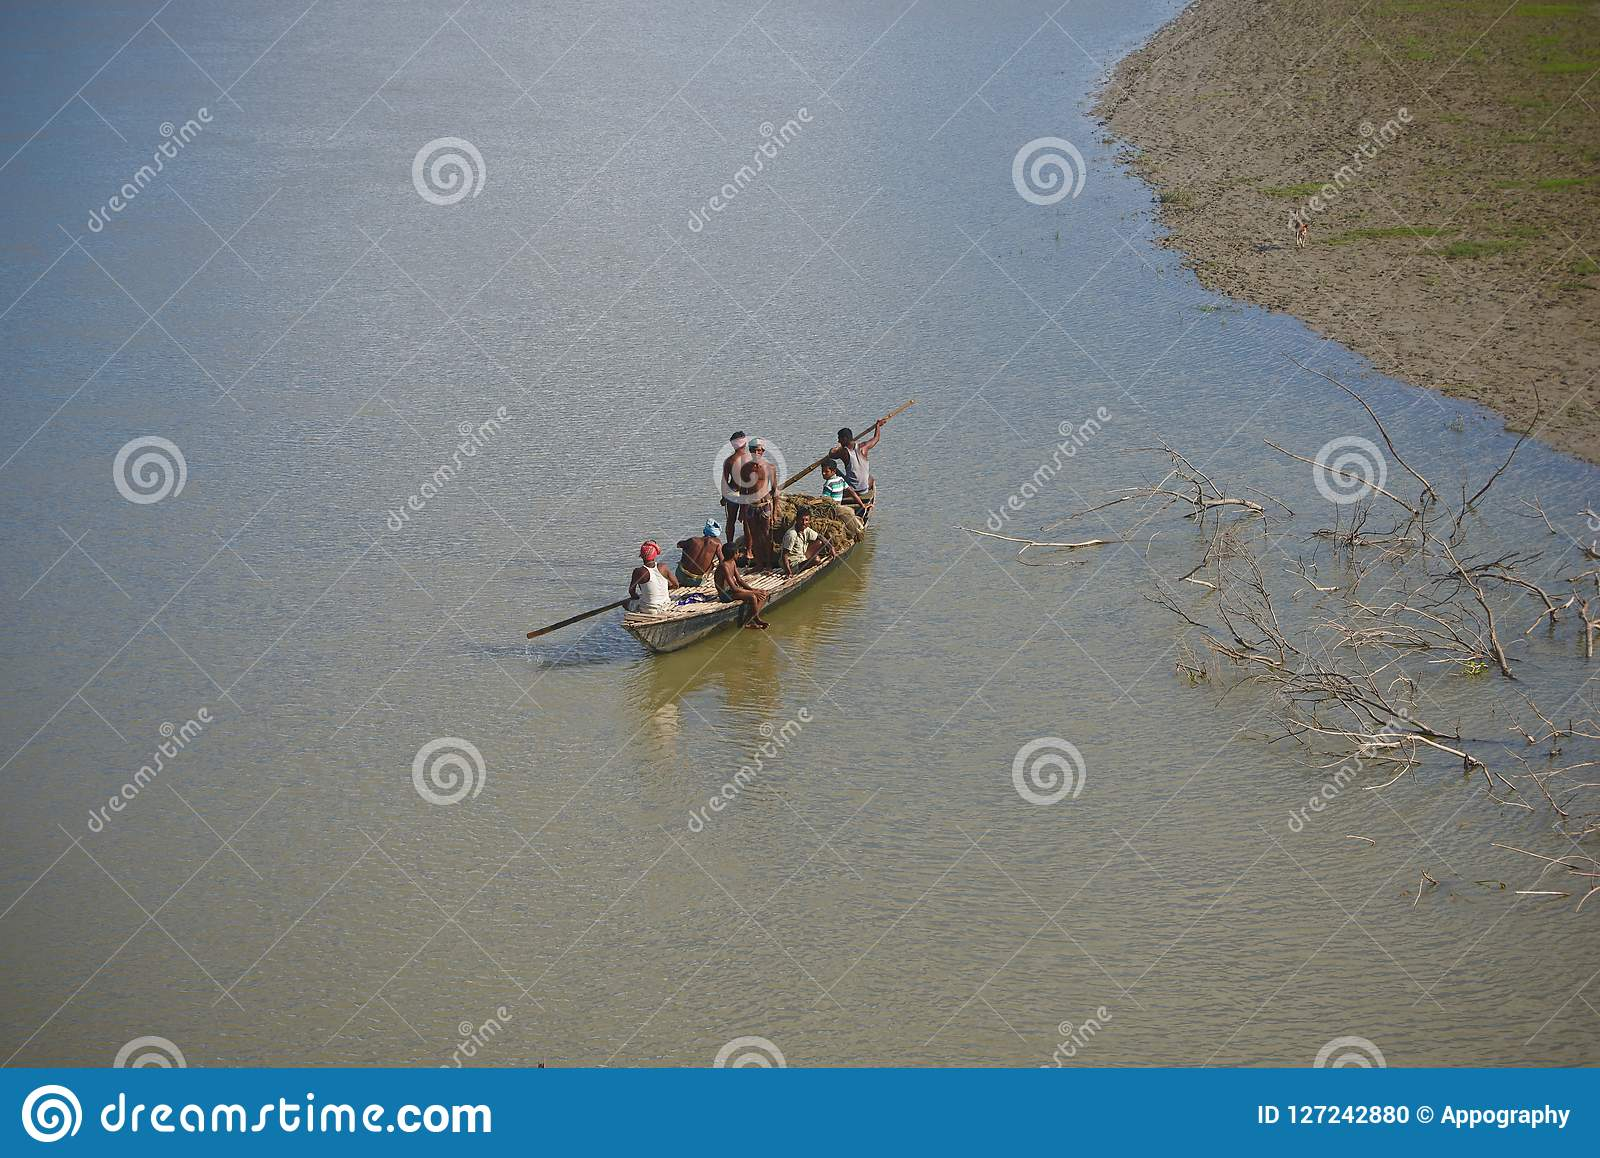 Fishermen are travelling on a boat in the river unique photo